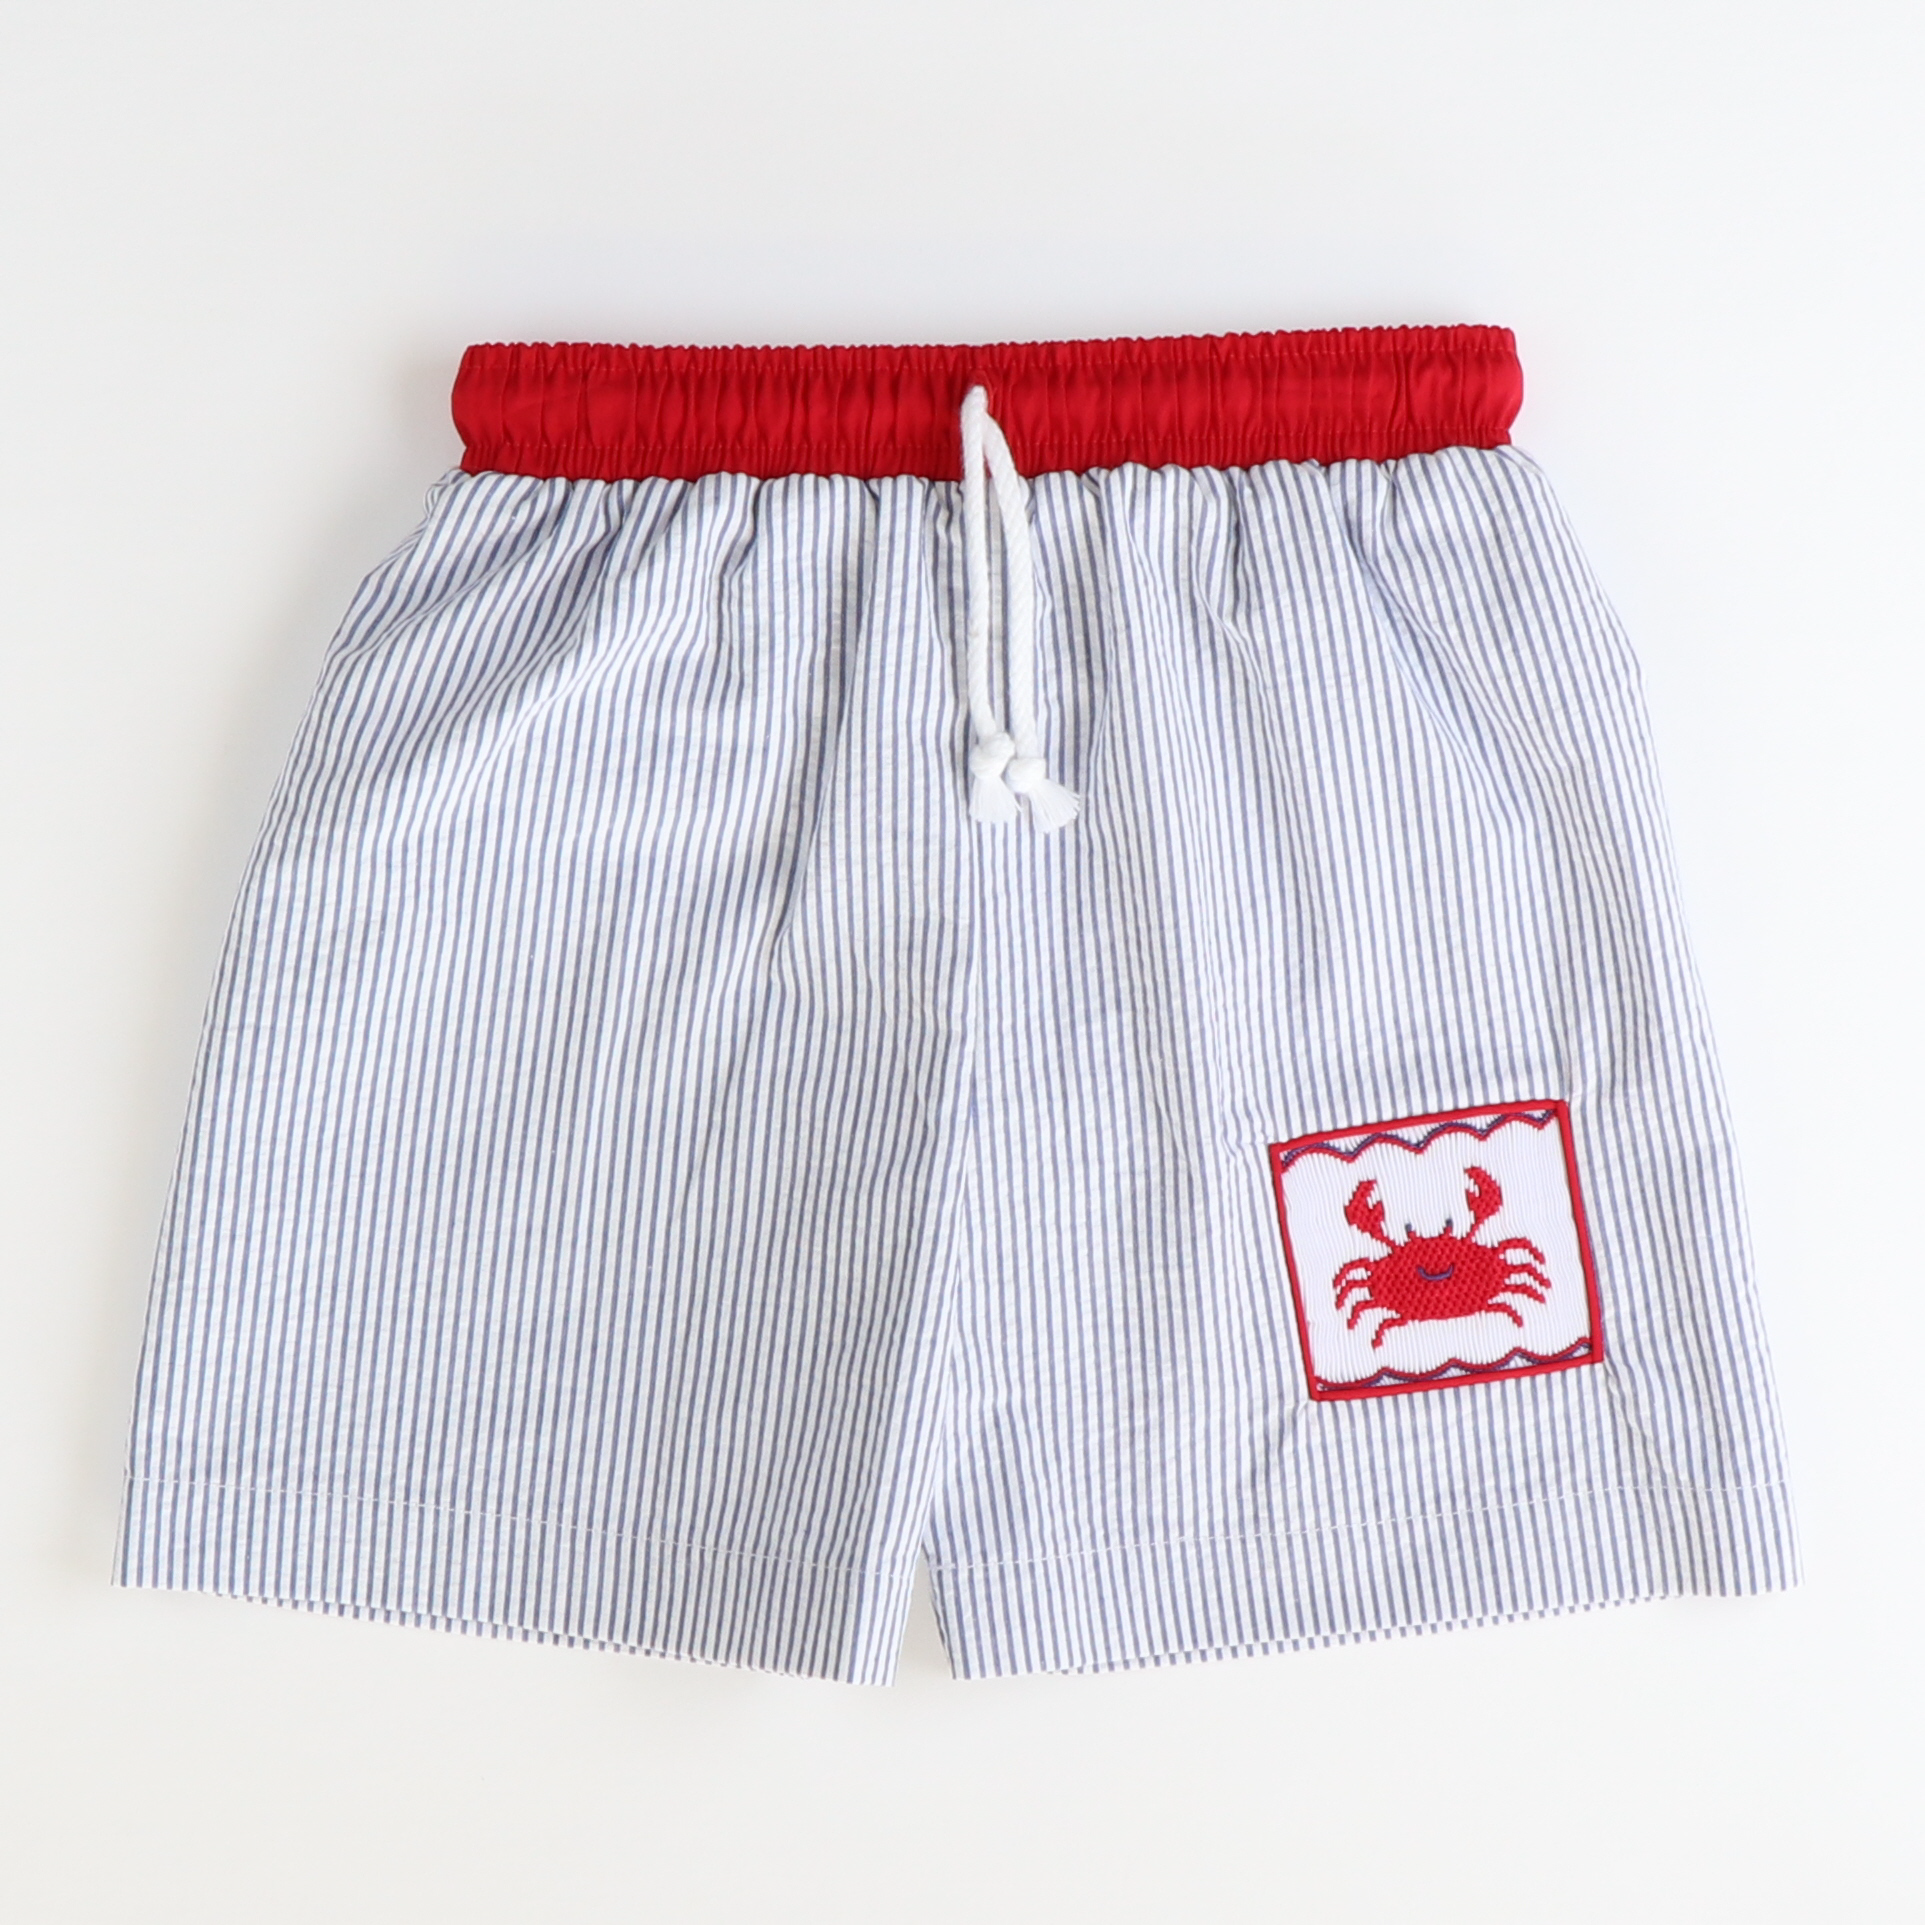 Smocked Crabs Swim Trunks - Royal Blue Stripe Seersucker